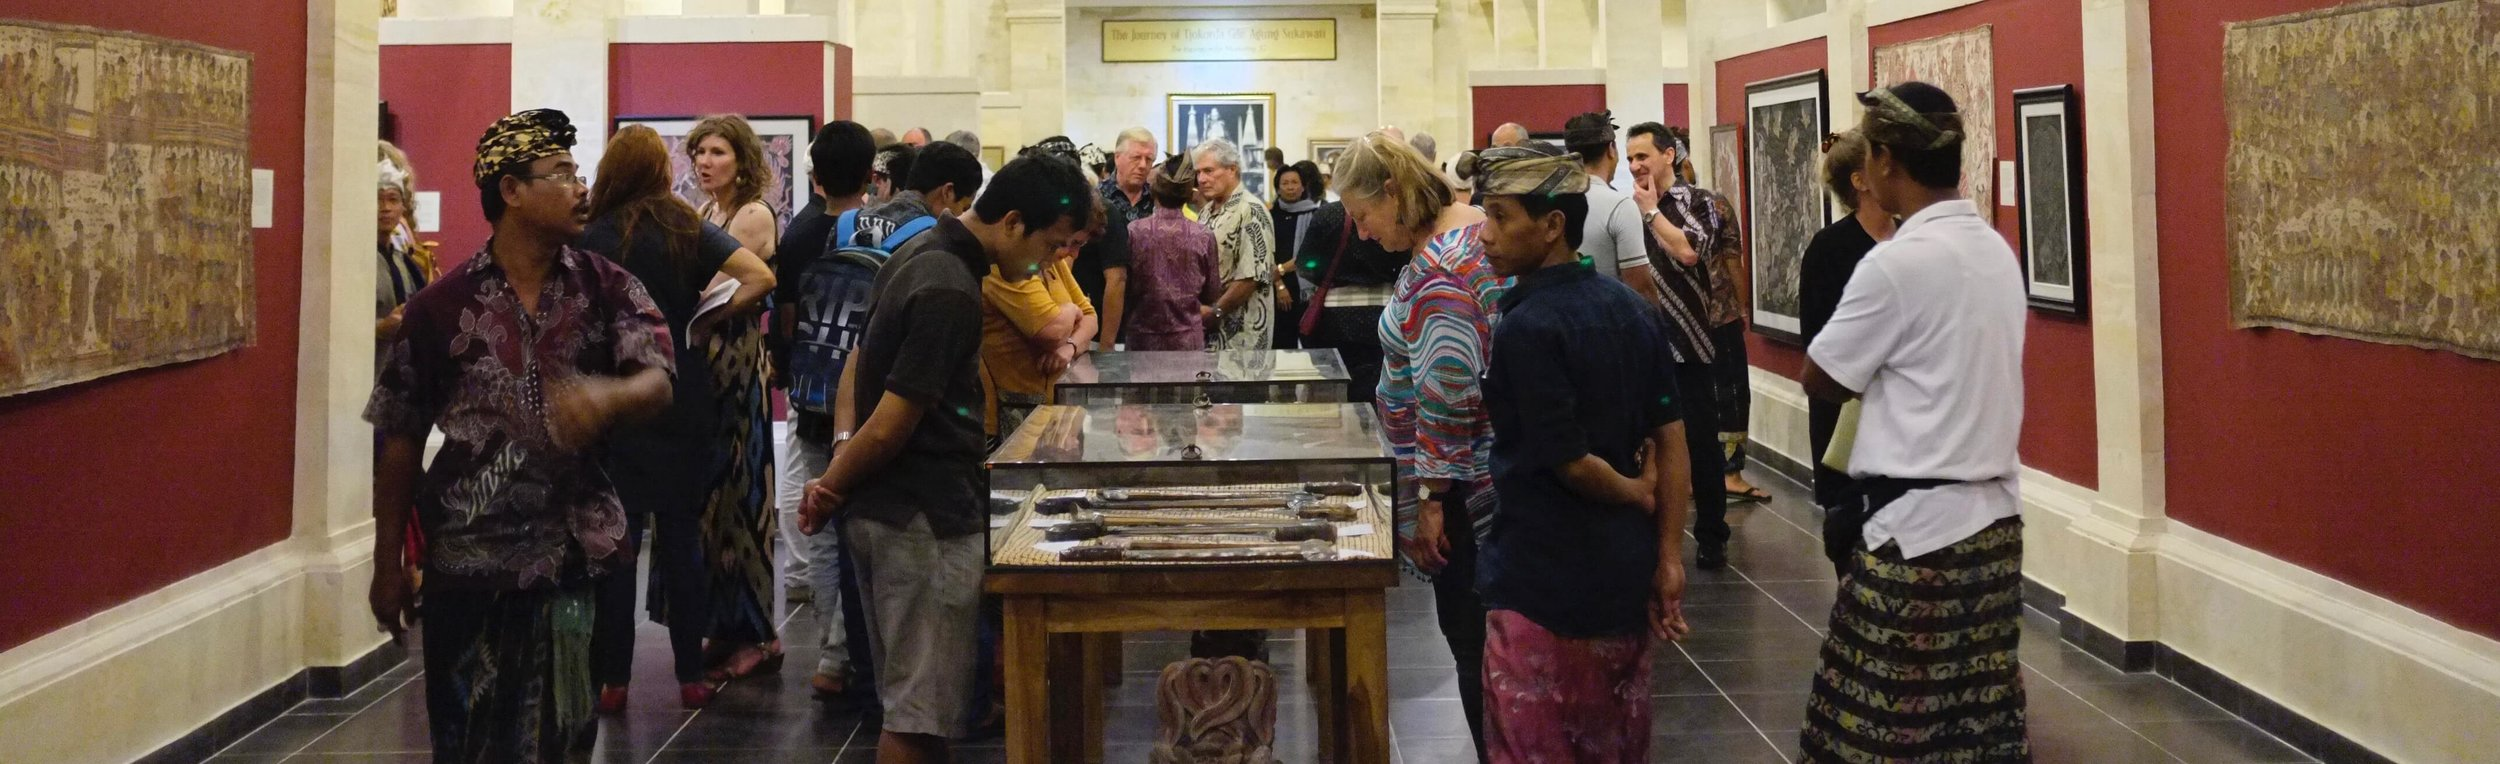 """The Museum Puri Lukisan in Ubud welcomed more than 300 guests for the opening of """"Ketut Madra and 100 Years of Balinese Wayang Painting."""""""